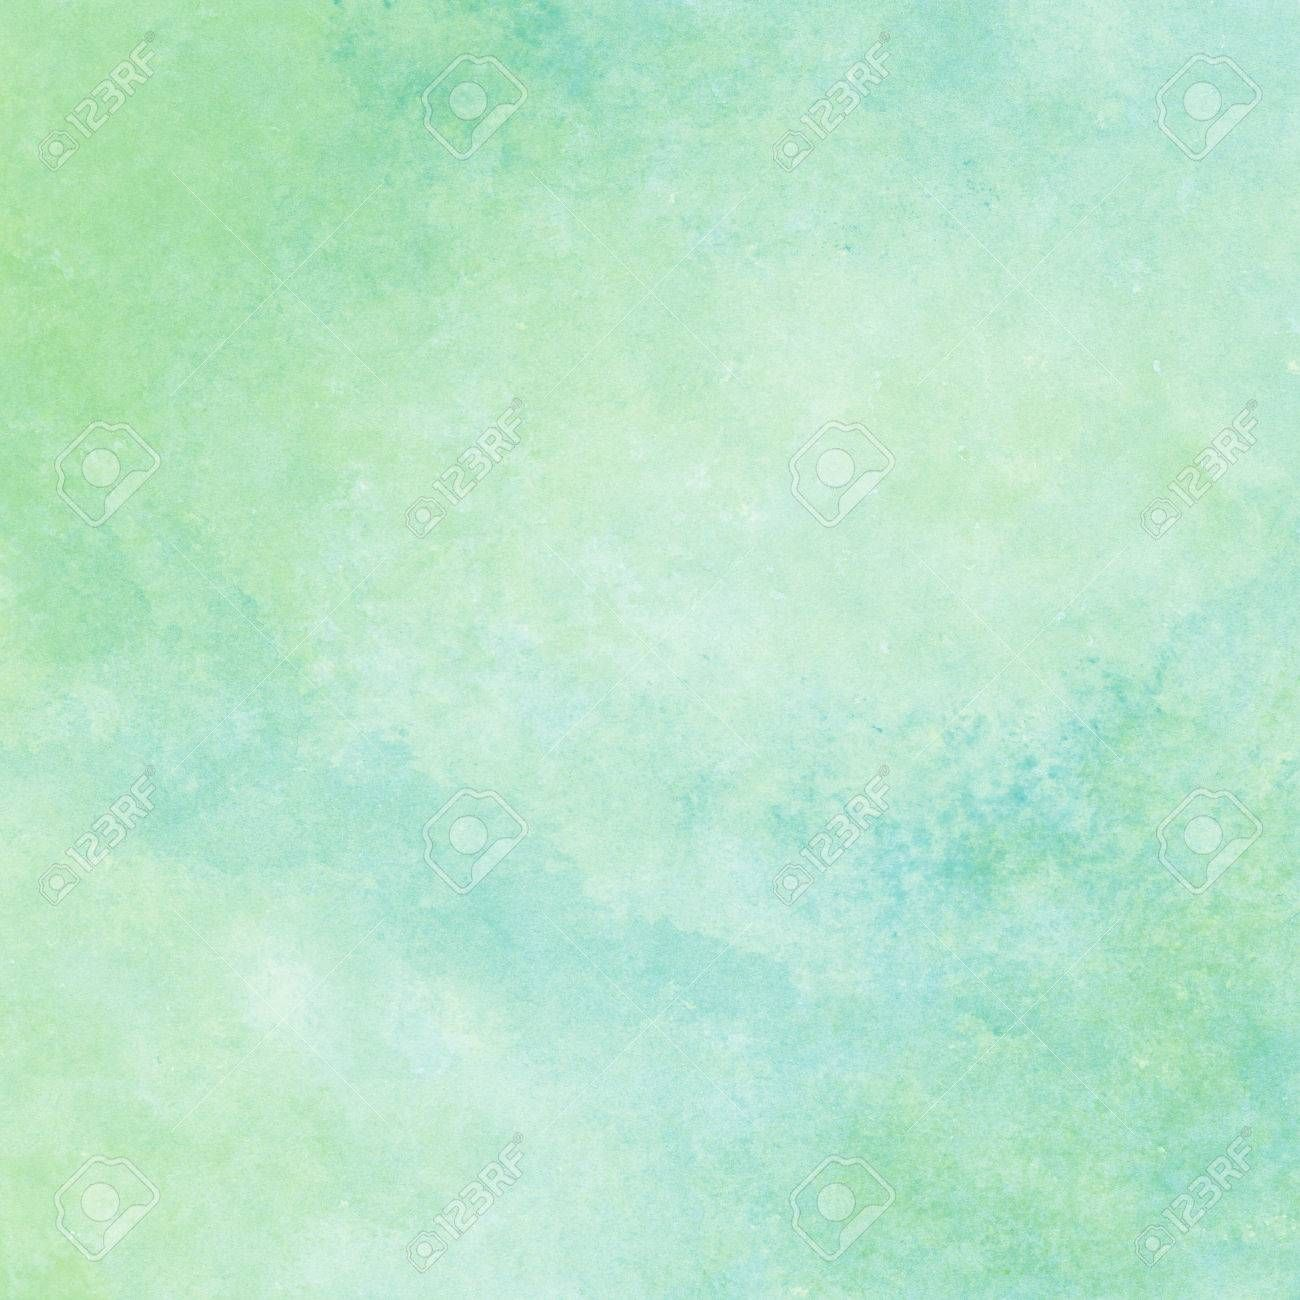 Green And Blue Watercolor Texture Background Hand Painted Spon